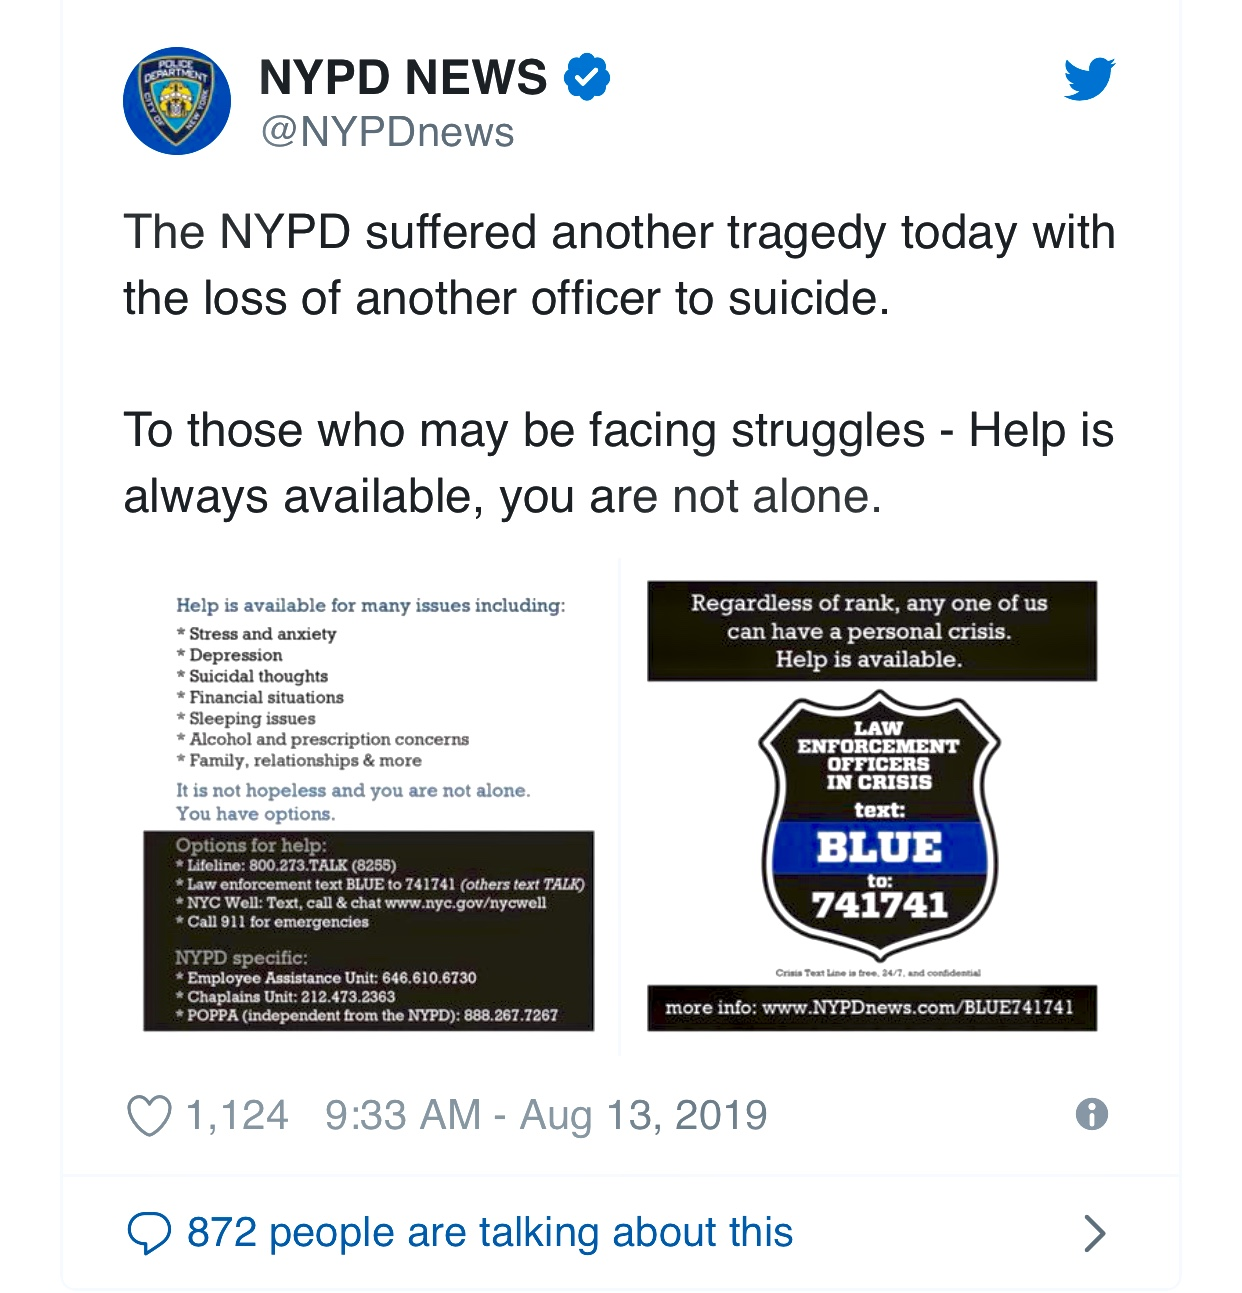 8th N.Y. Police Officer Dies by Suicide, Further Unsettling the Force – The New York Times